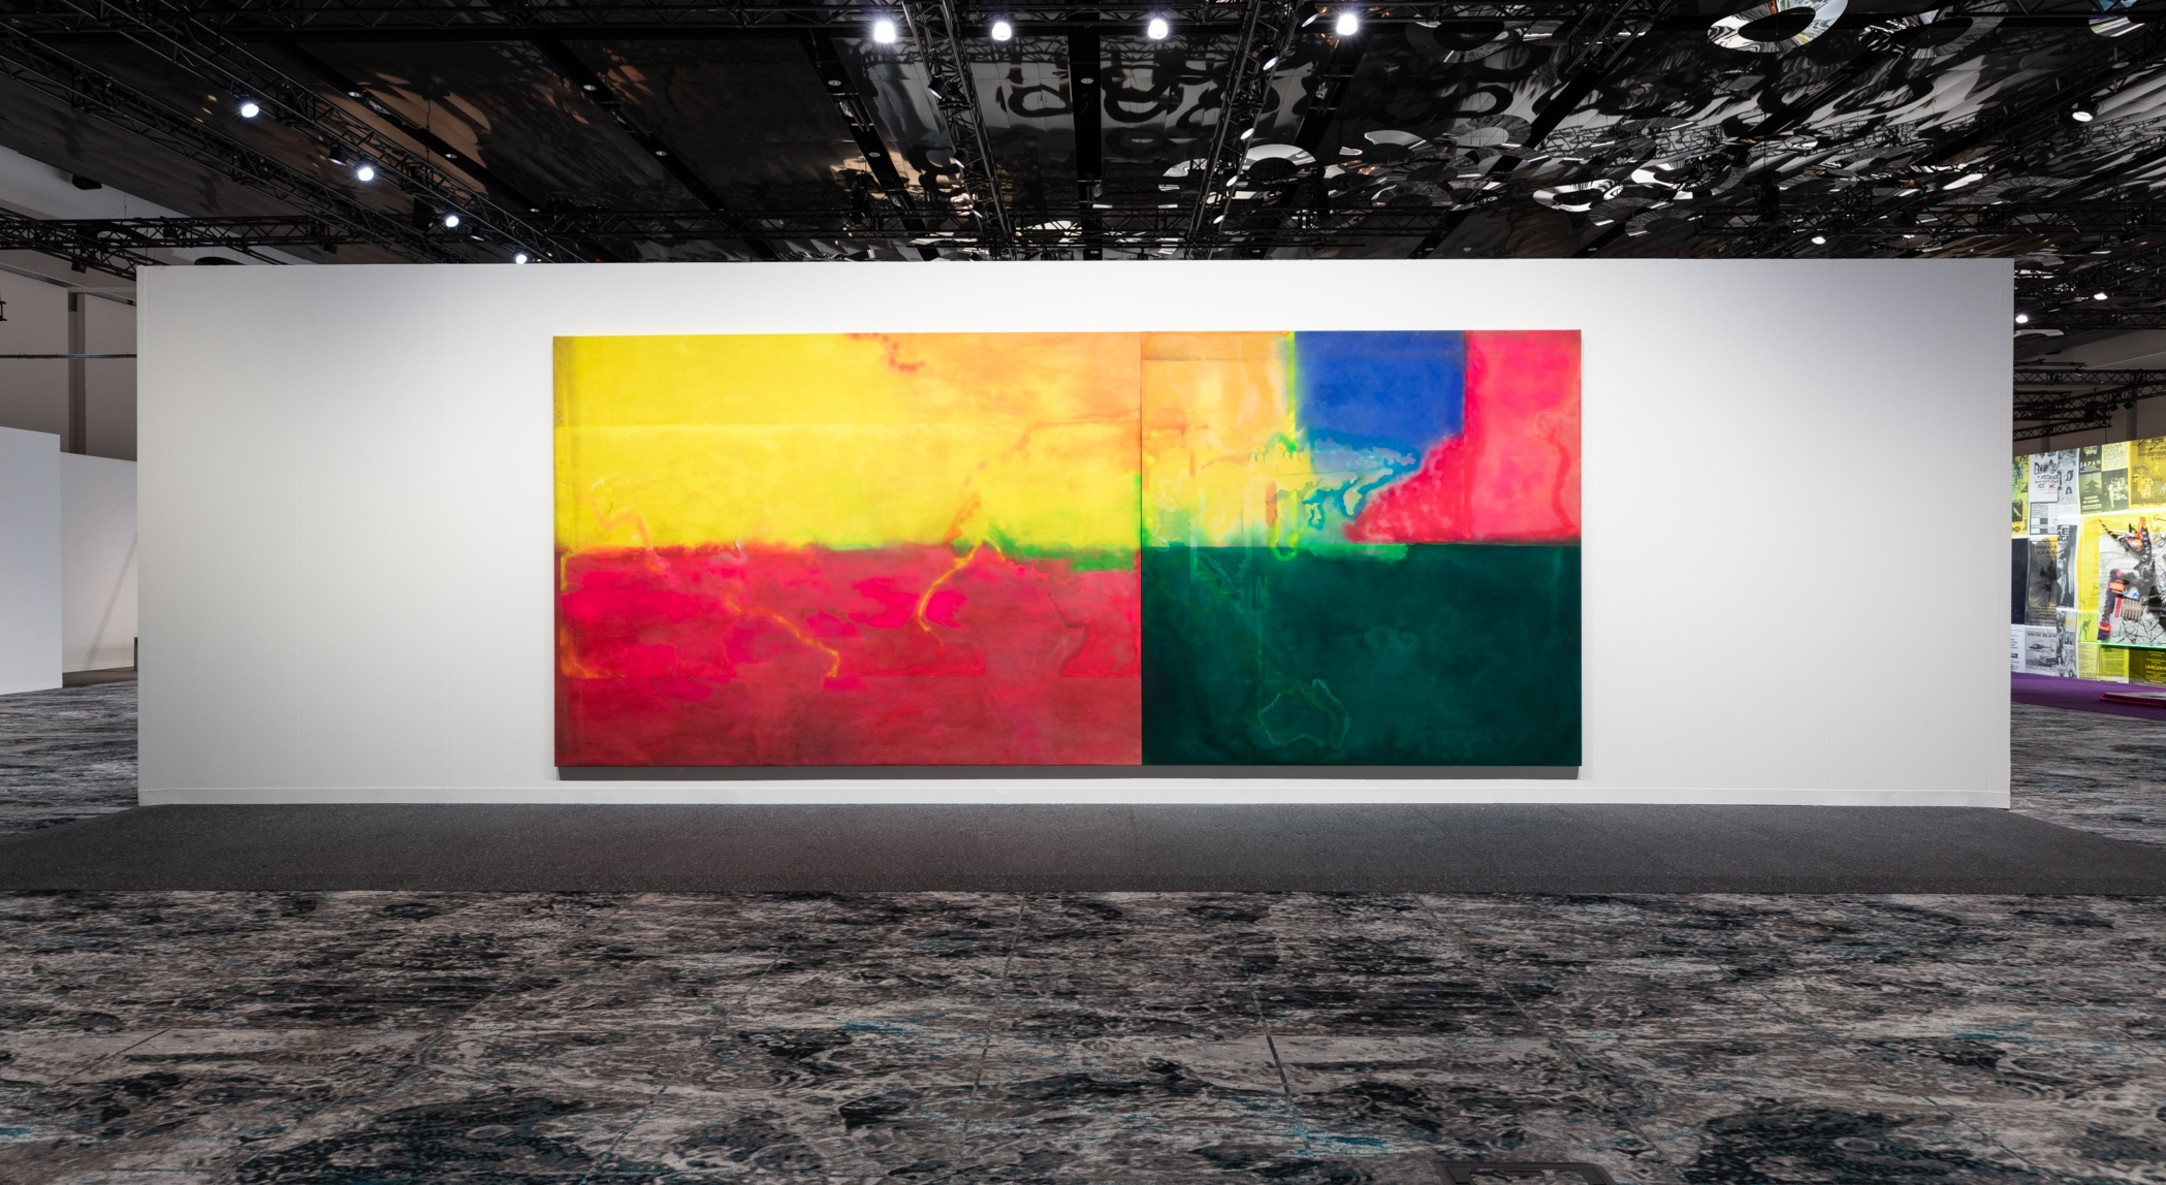 Installation view of Meridians: Frank in Hales Gallery booth at Art Basel Miami Beach 2019